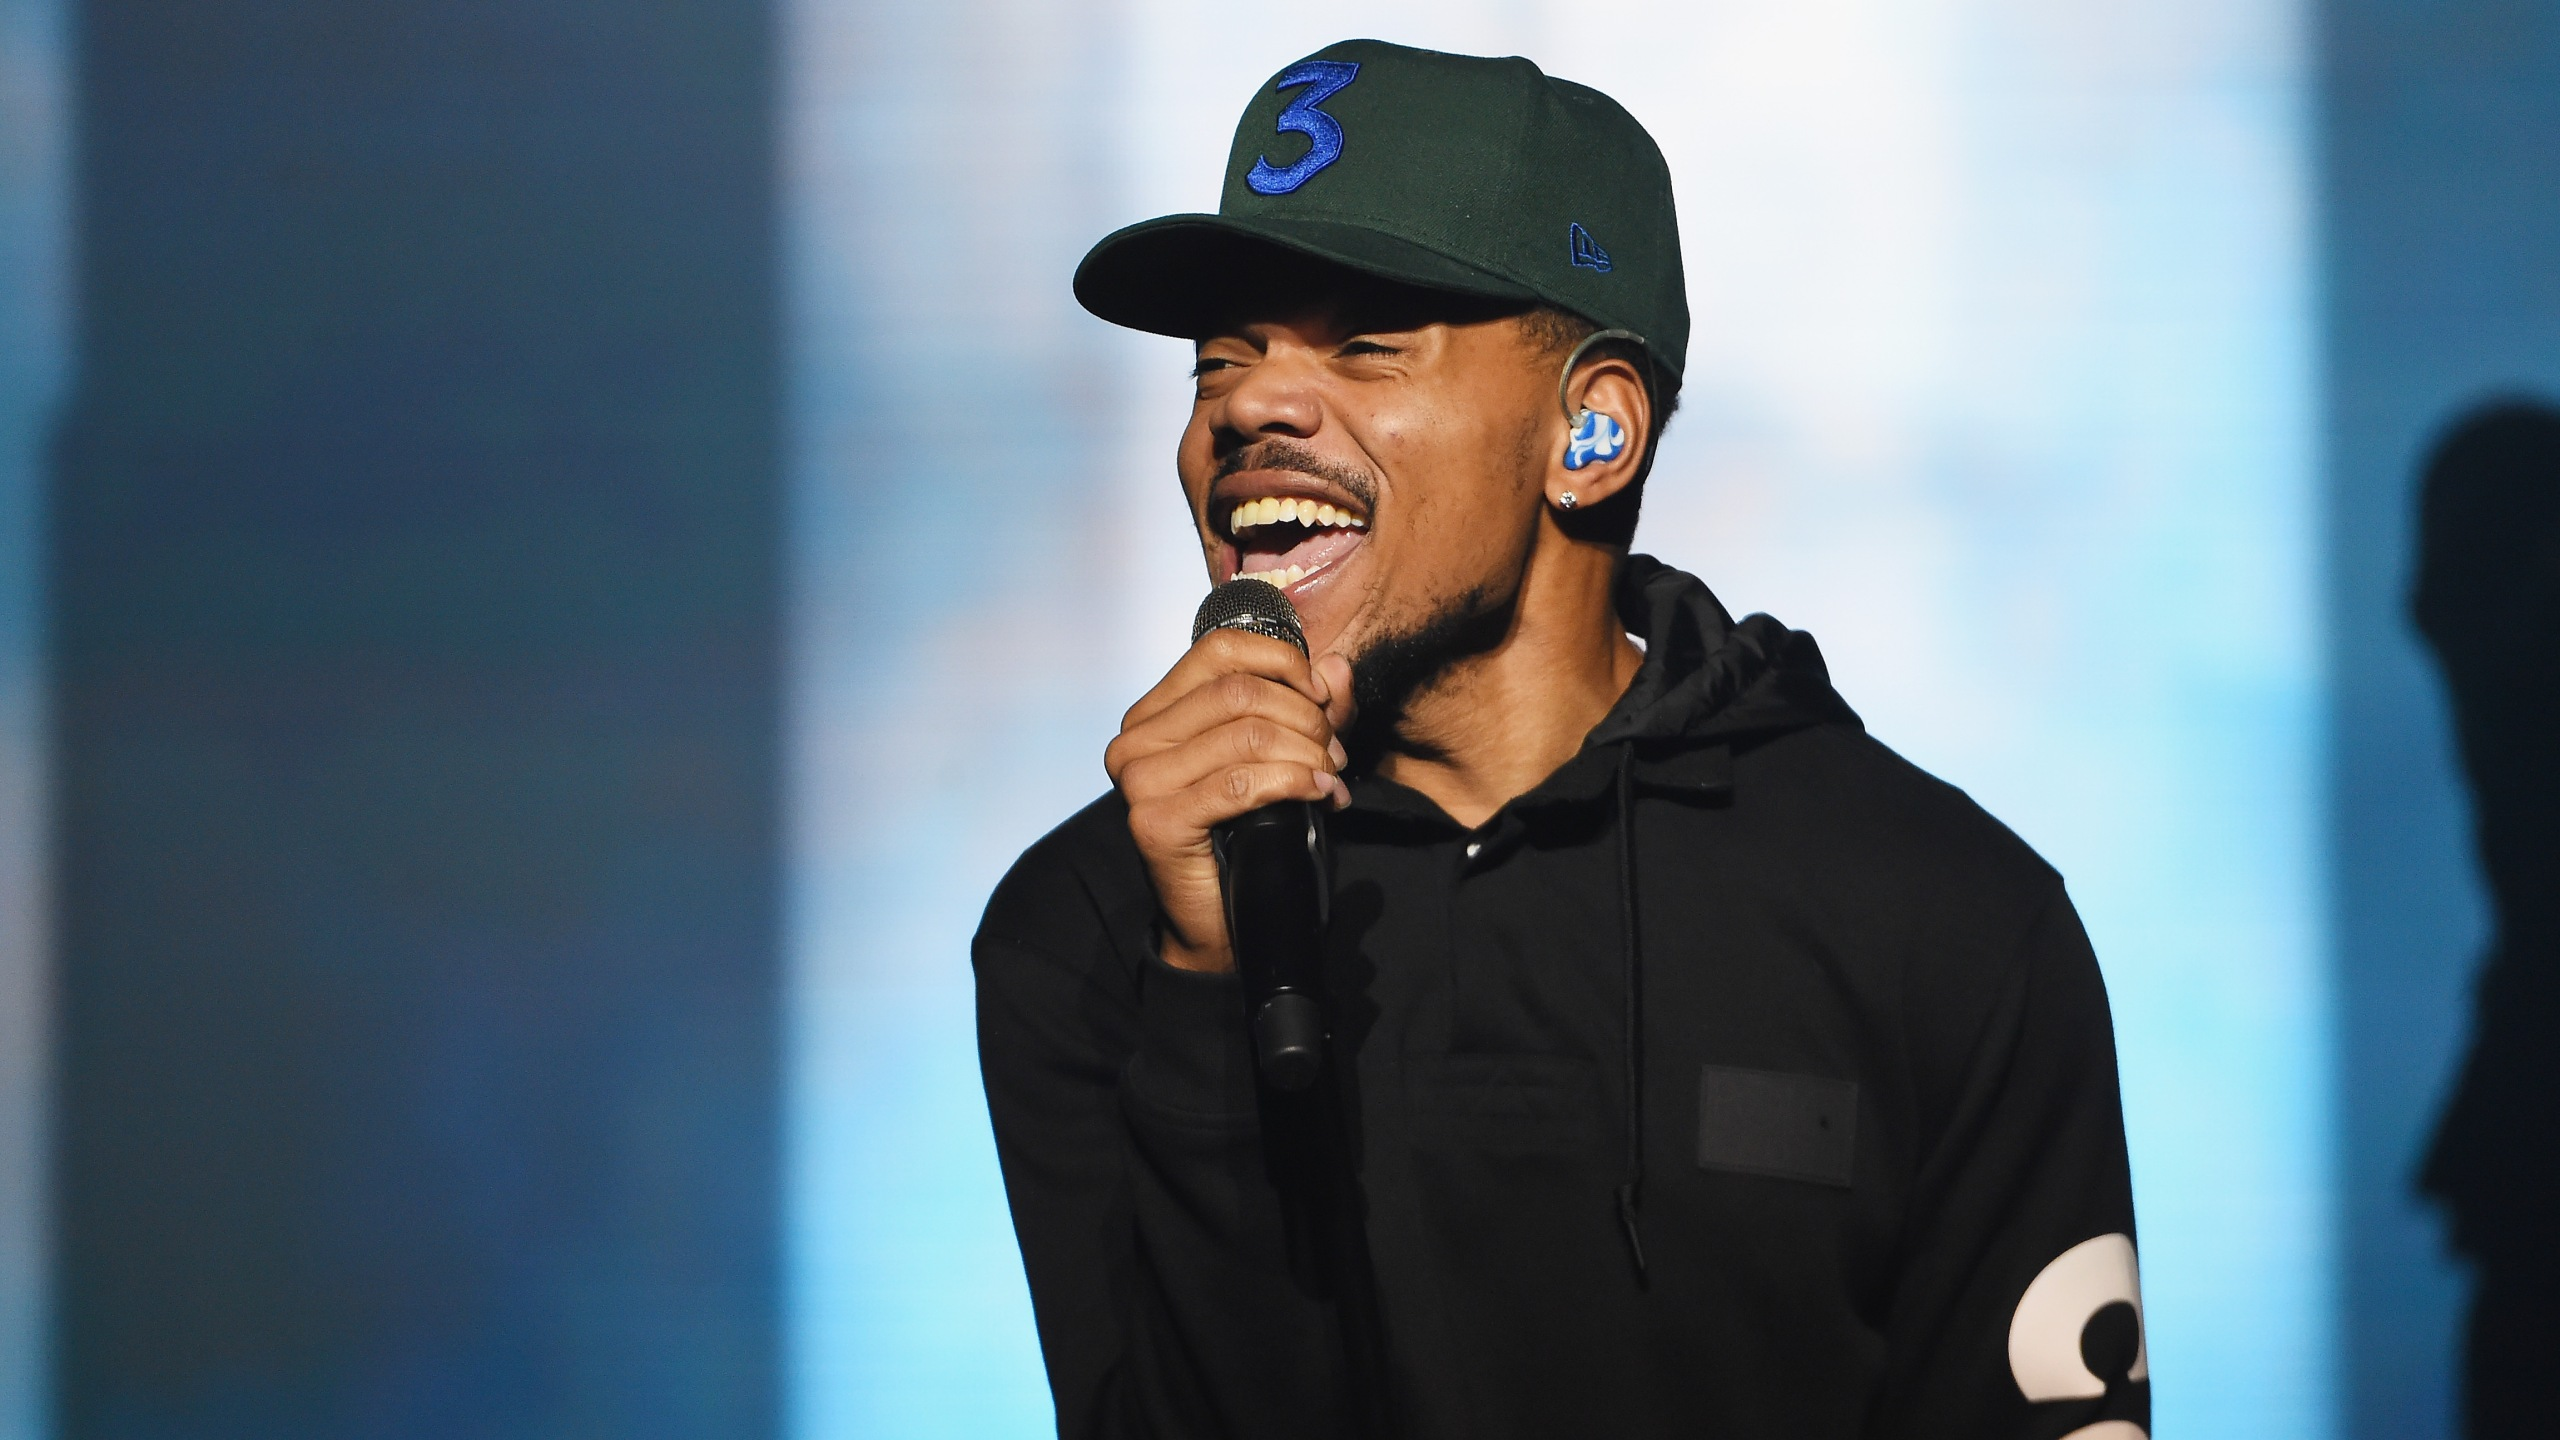 Chance the Rapper performs onstage in Brooklyn on Sept. 29, 2018. (Credit: Nicholas Hunt/Getty Images for Spotify)